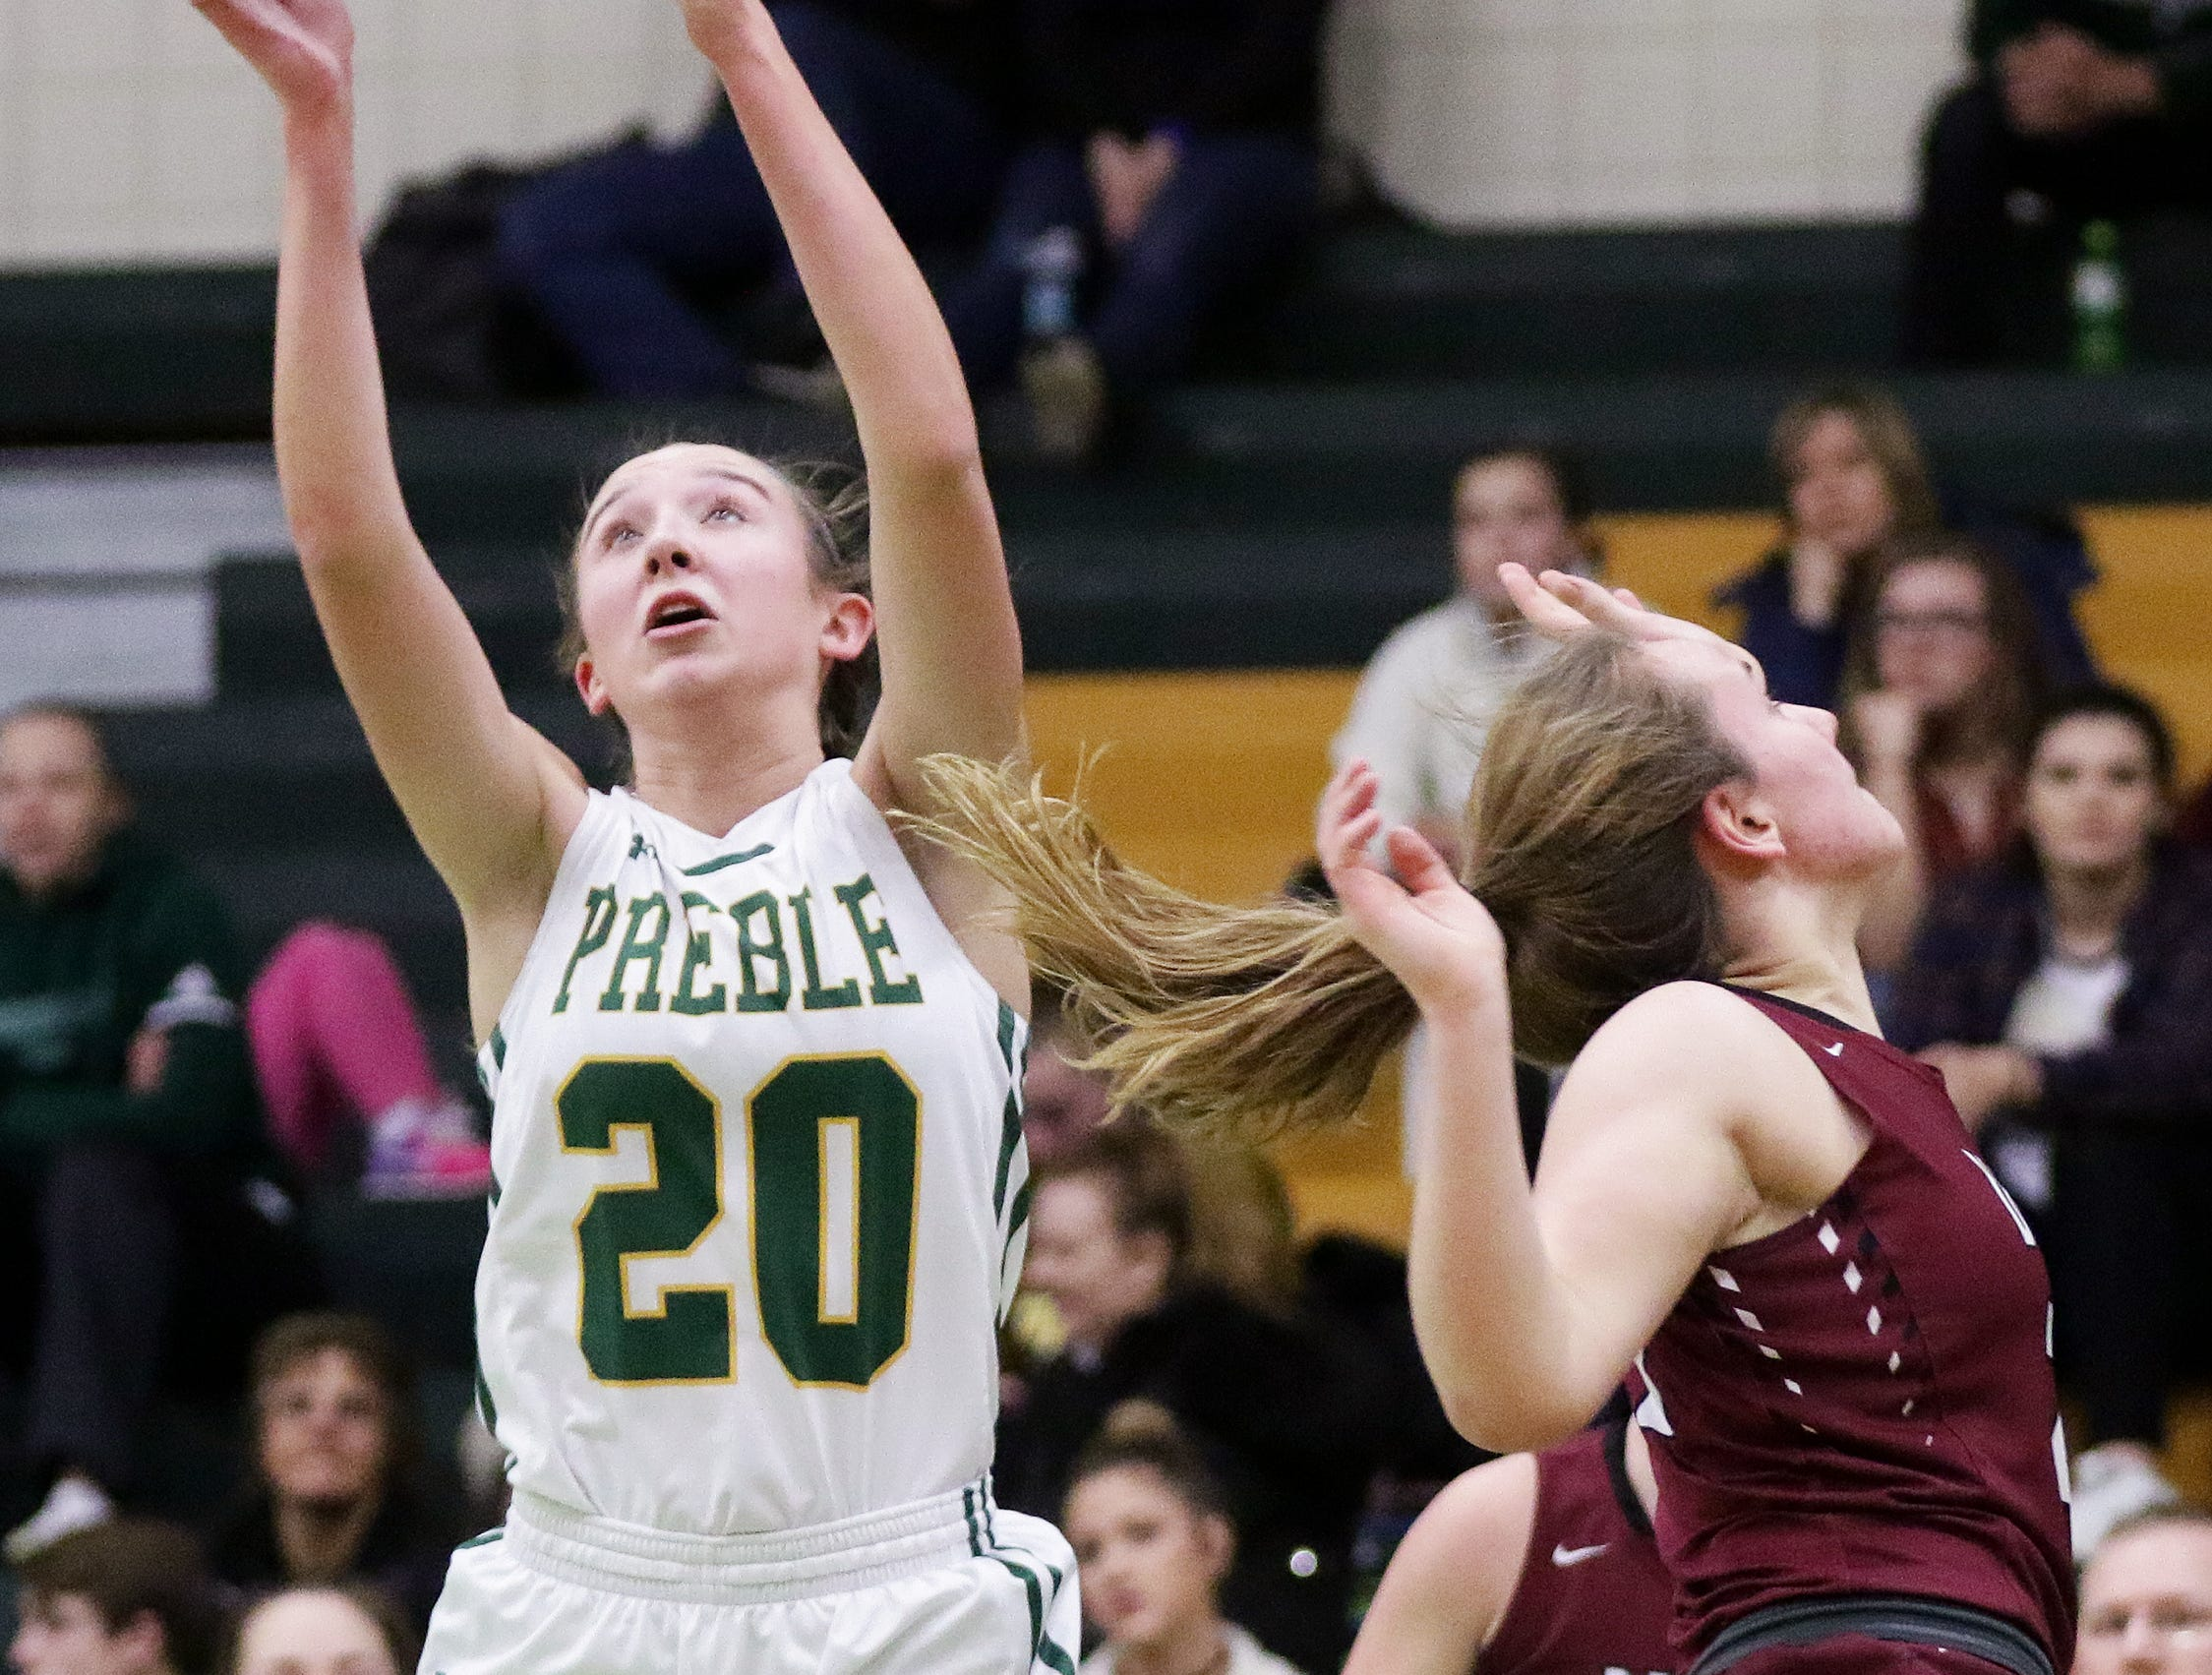 Green Bay Preble's Carley Duffney (20) grabs a rebound against De Pere in a girls basketball game at Preble high school on Tuesday, January 8, 2019 in Green Bay, Wis.